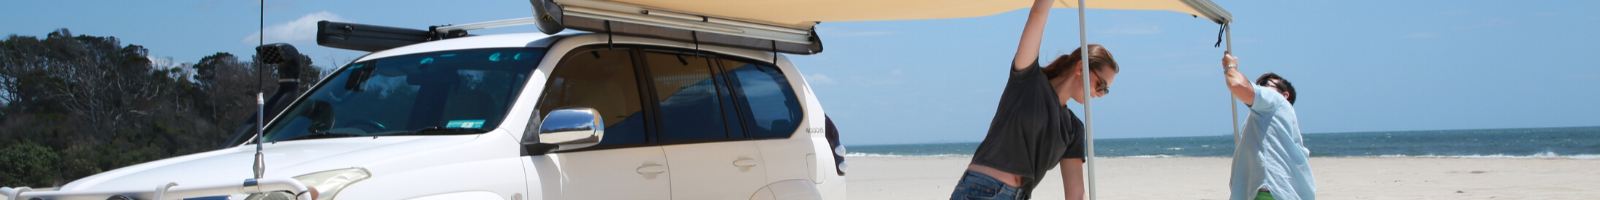 Secure your awning with its poles